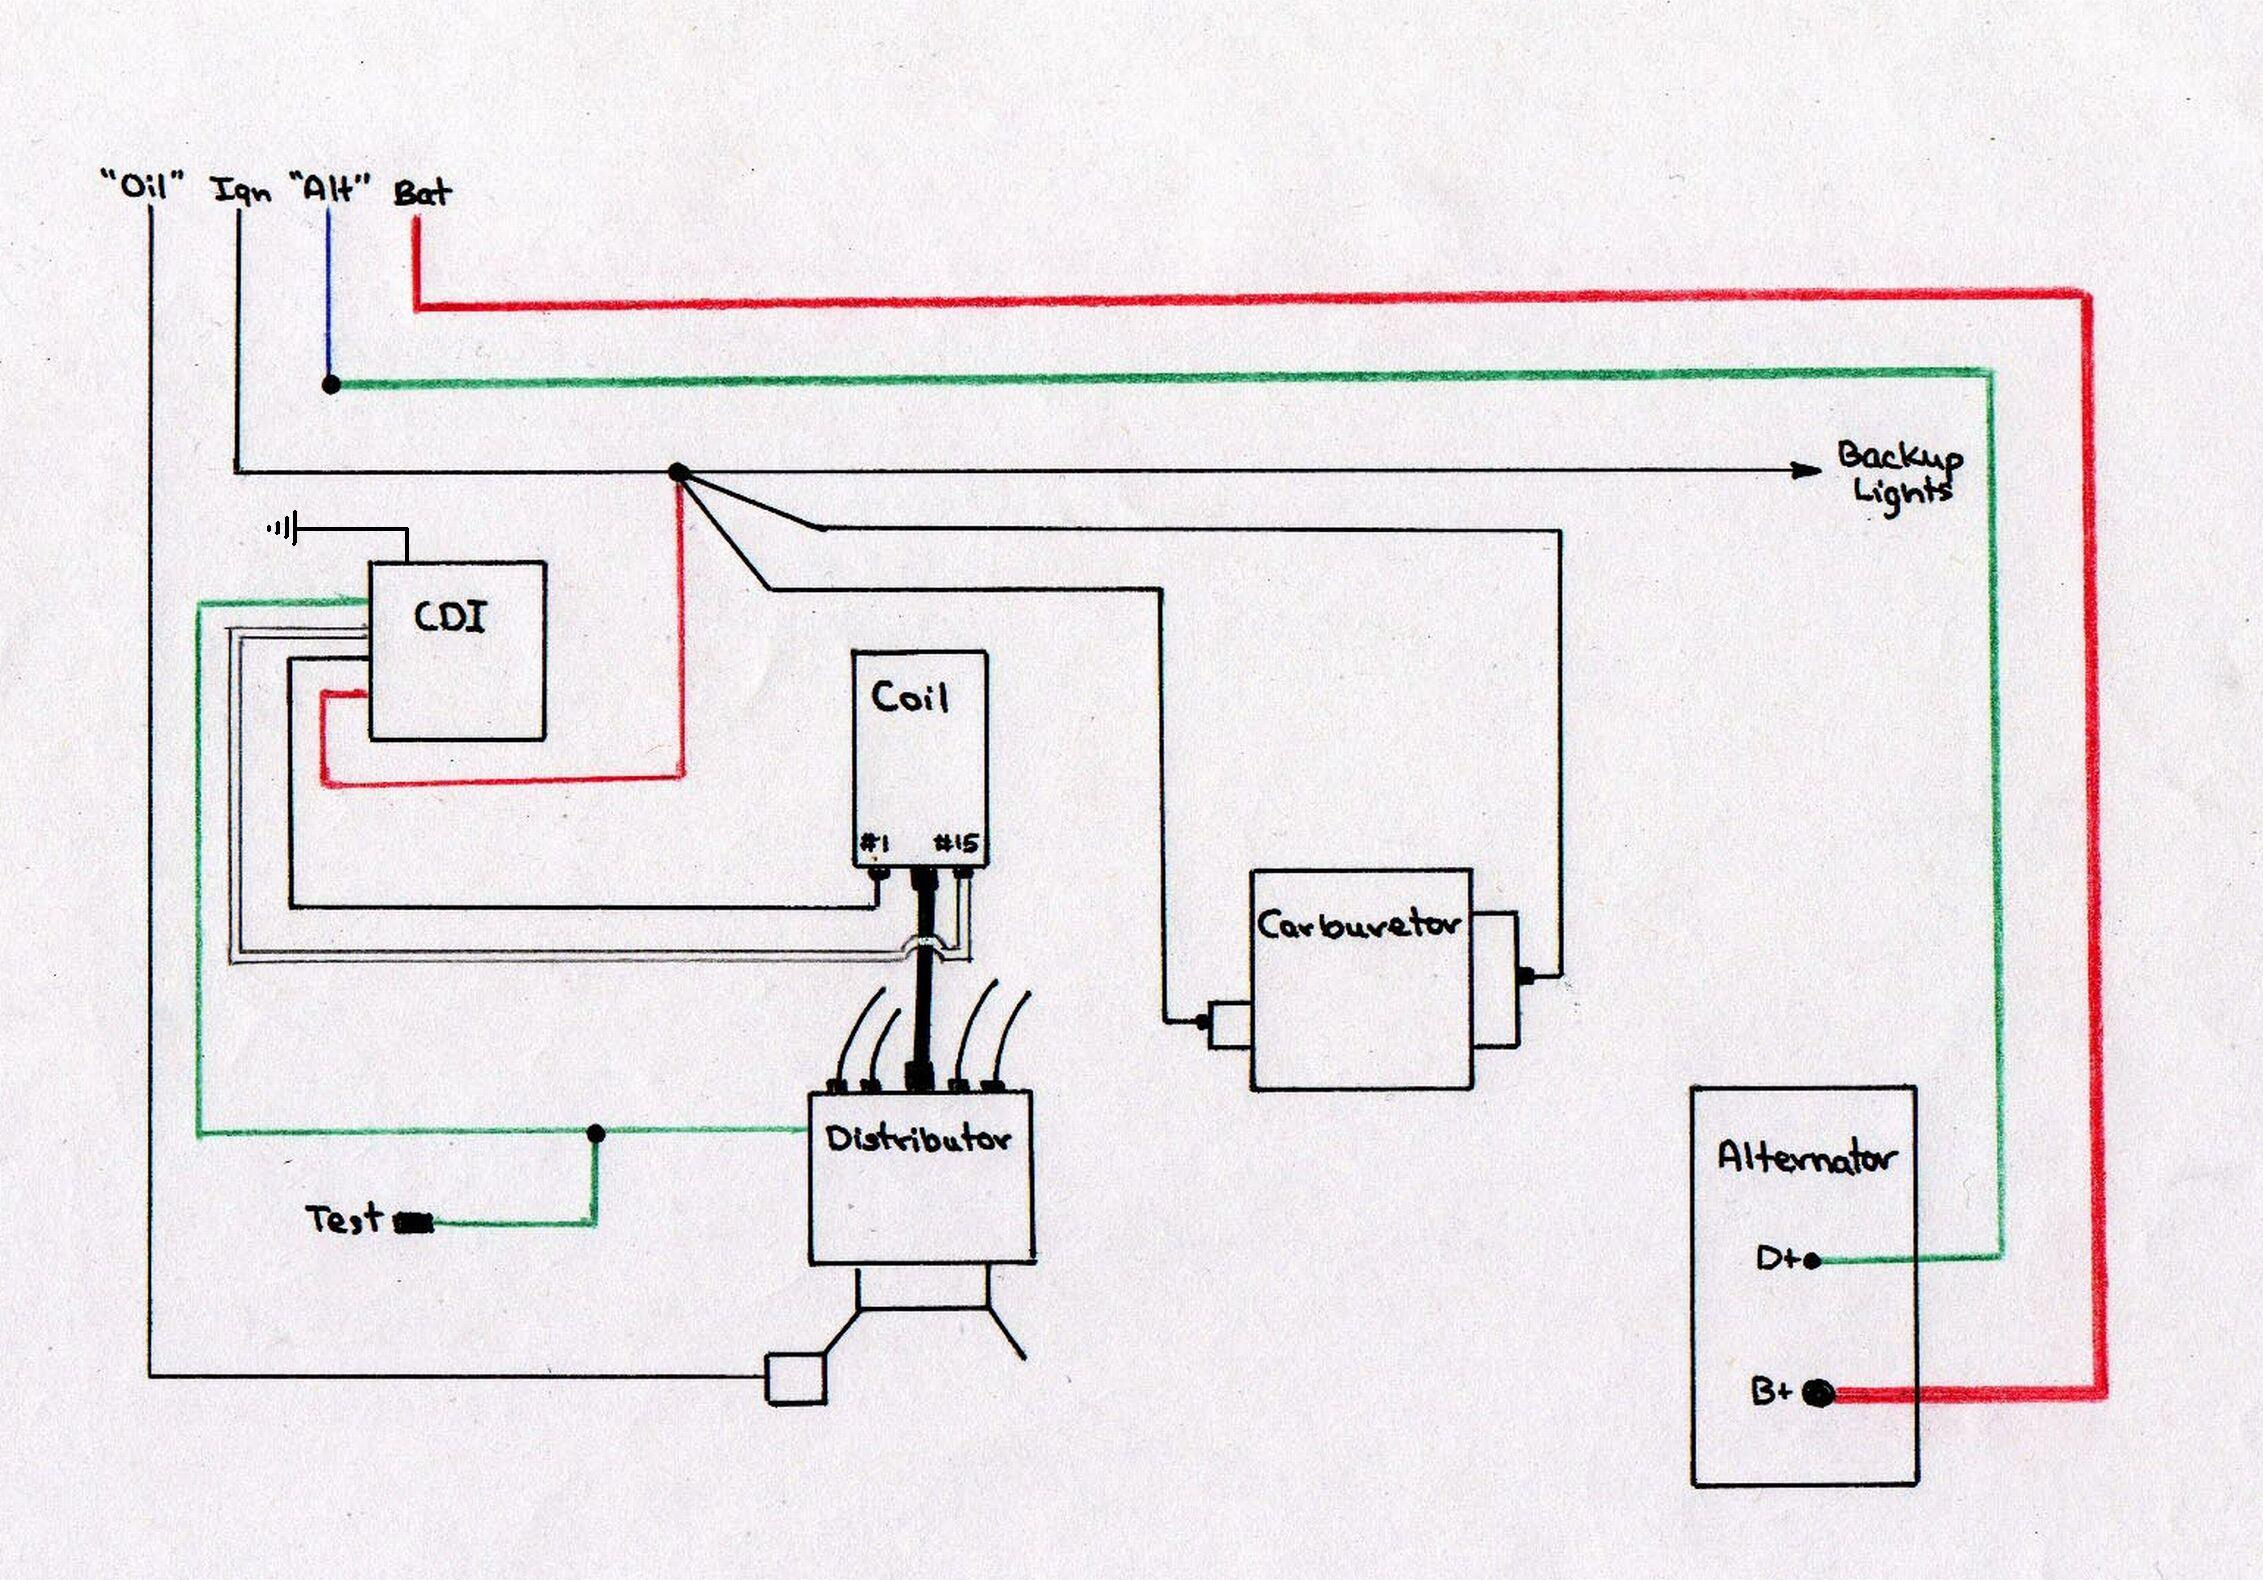 Cdi Ignition Wire - Today Wiring Diagram - 5 Pin Cdi Wiring Diagram